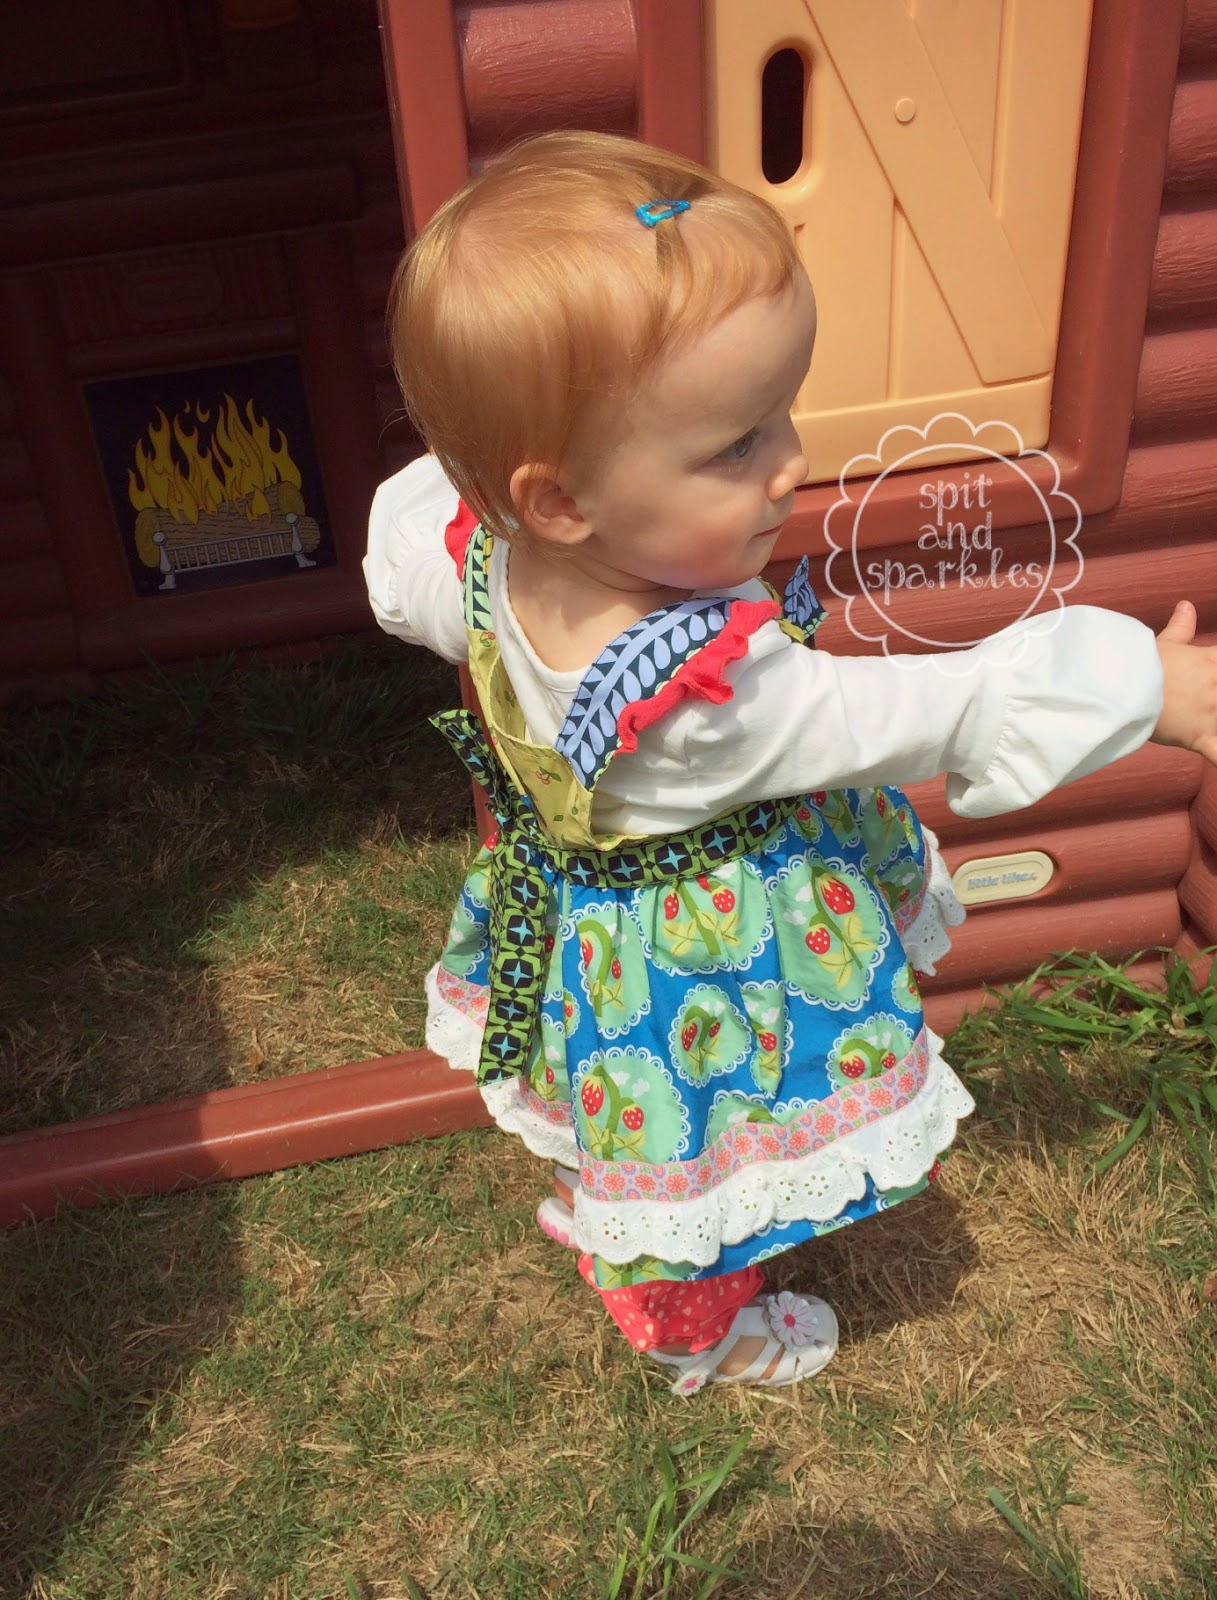 Matilda Jane Clothing is whimisical and fun! Win a $50 gift card. Ends 4/22